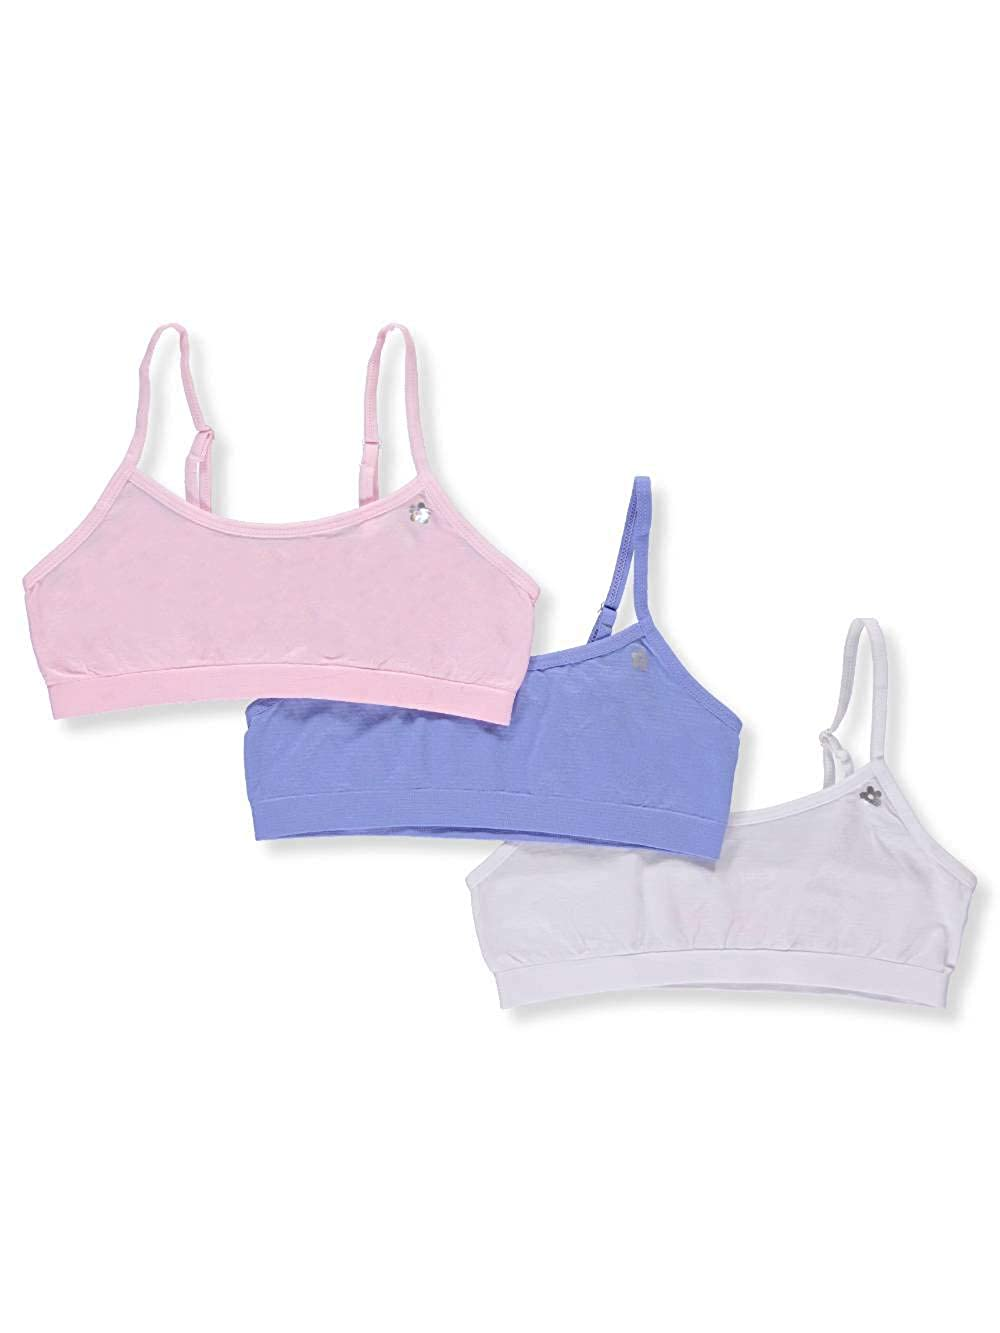 Limited Too Girls' 3-Pack Seamless Bras Panties Plus